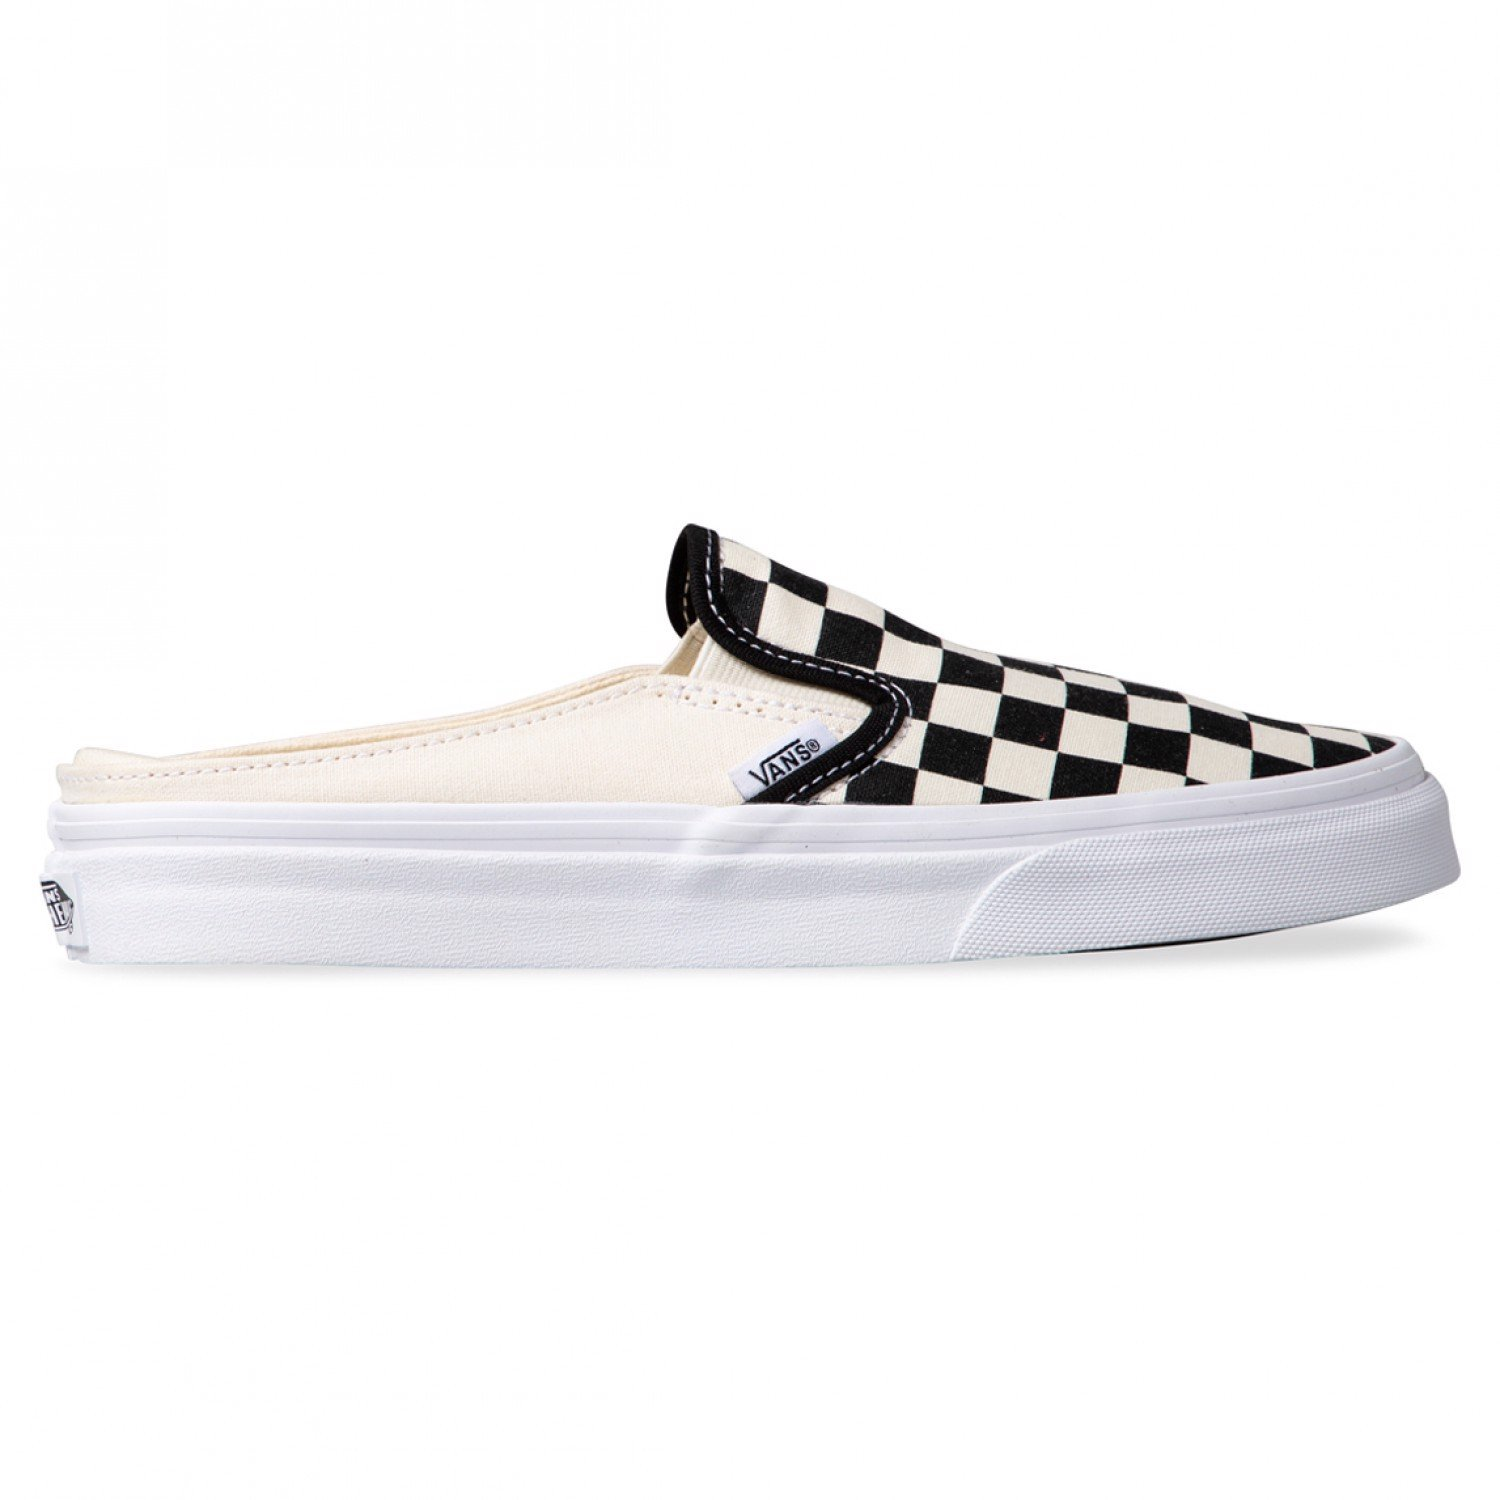 VANS CHECKER SLIP-ON MULE